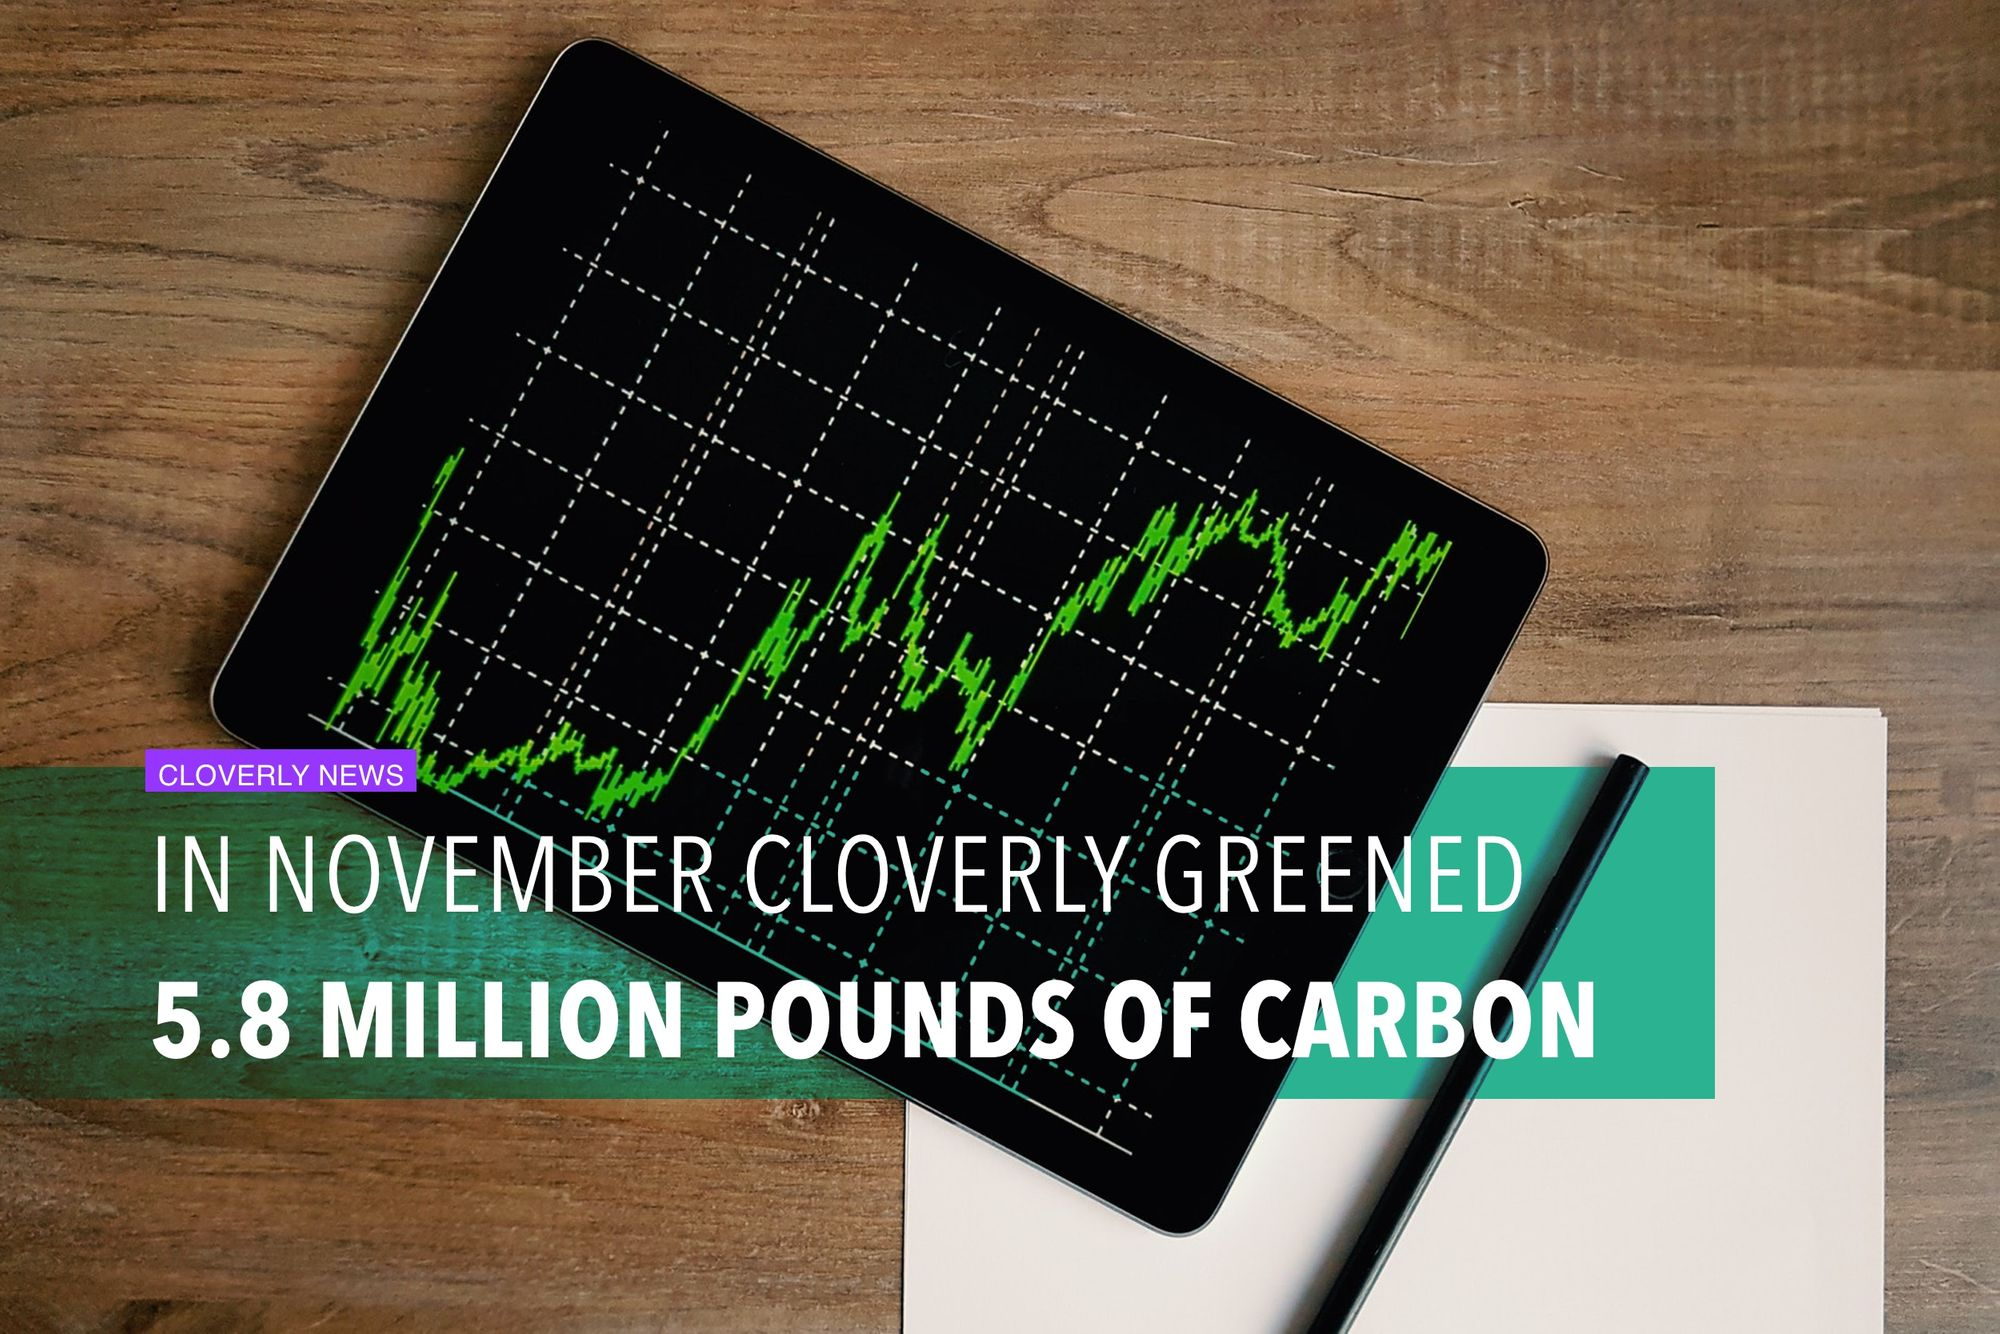 In November, Cloverly greened 5.8 million pounds of carbon